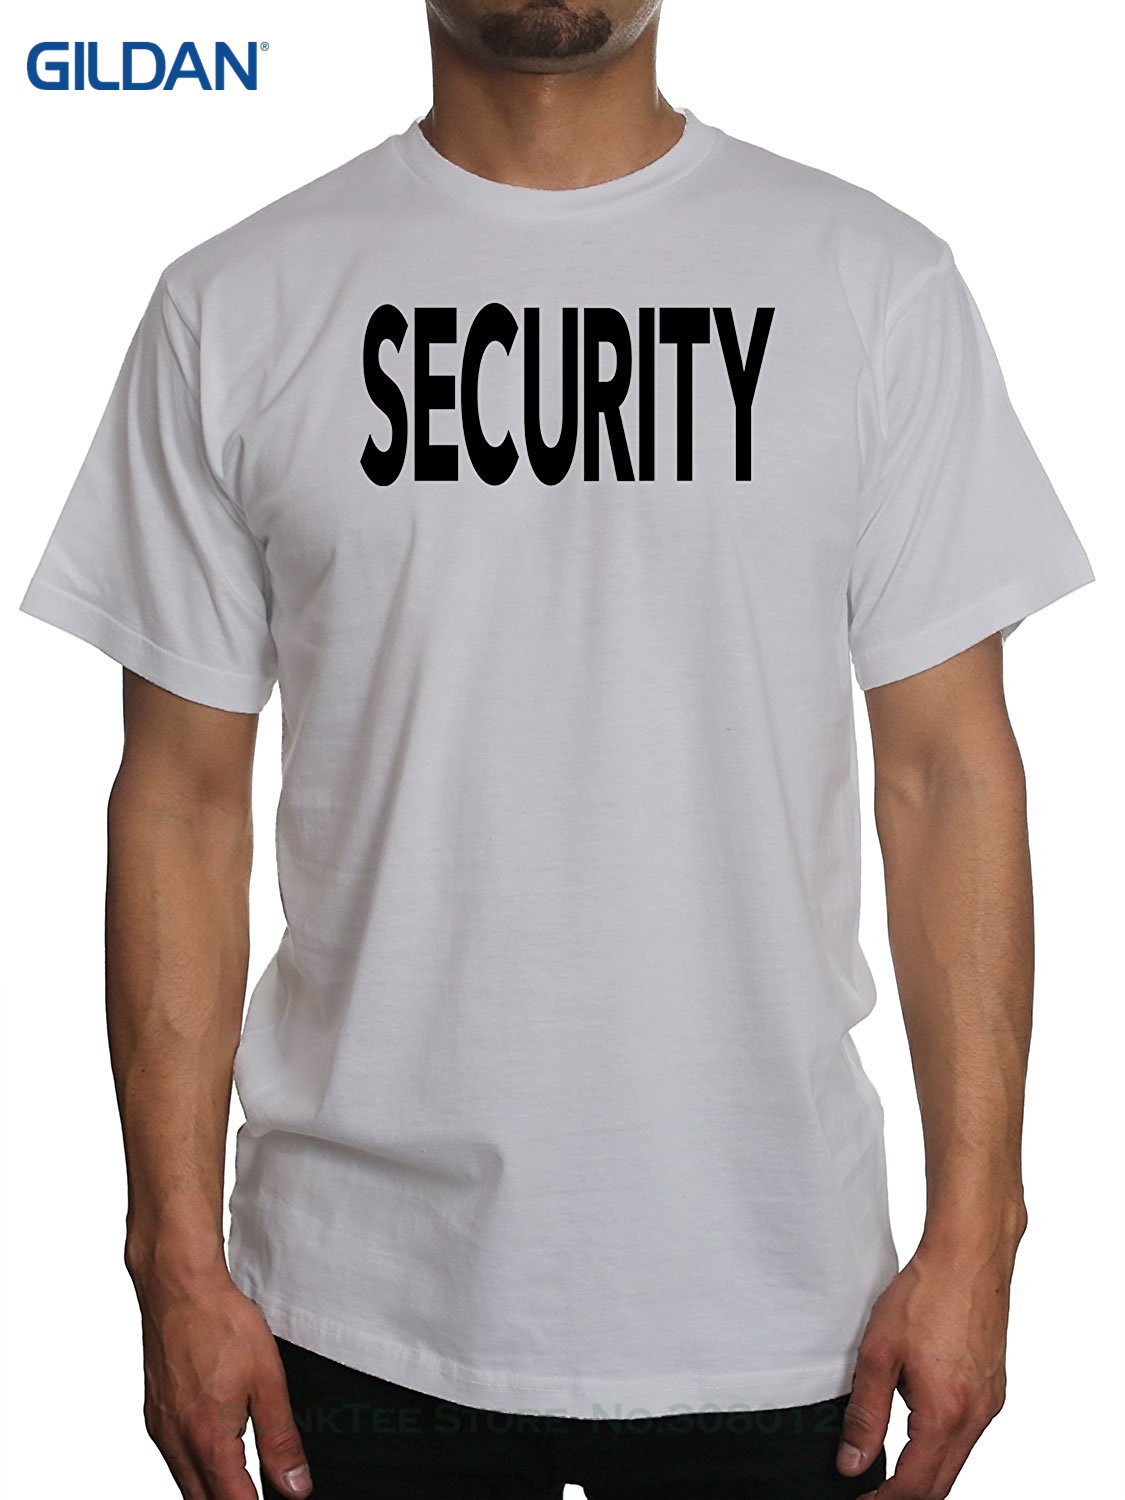 Black t shirt security - Gildan 100 Cotton T Shirts Brand Clothing Tops Tees Men S Security Bouncer Event Black T